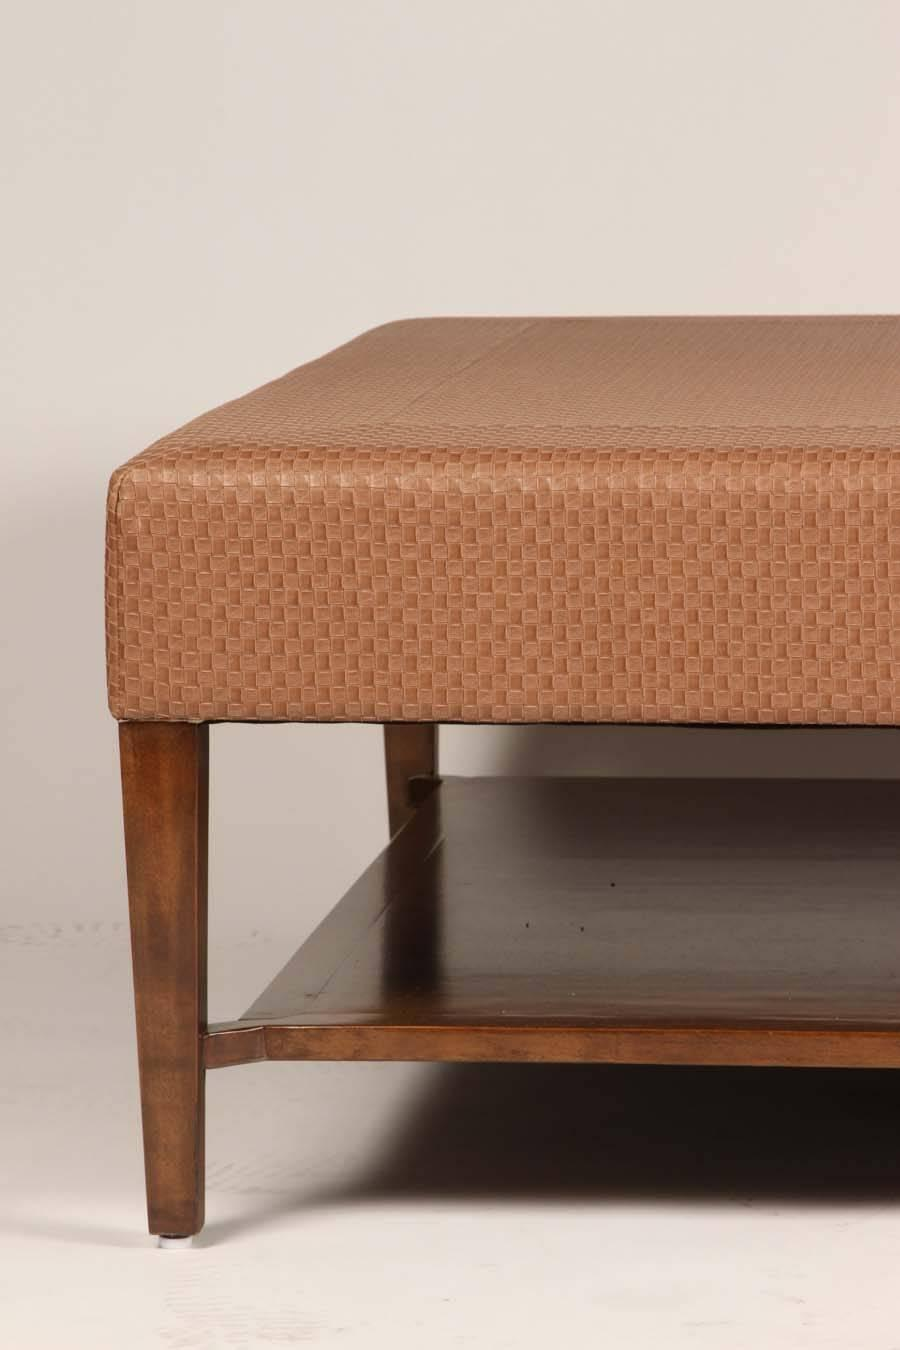 Upholstered Coffee Table The Best Inspiration For Interiors Design And Furniture